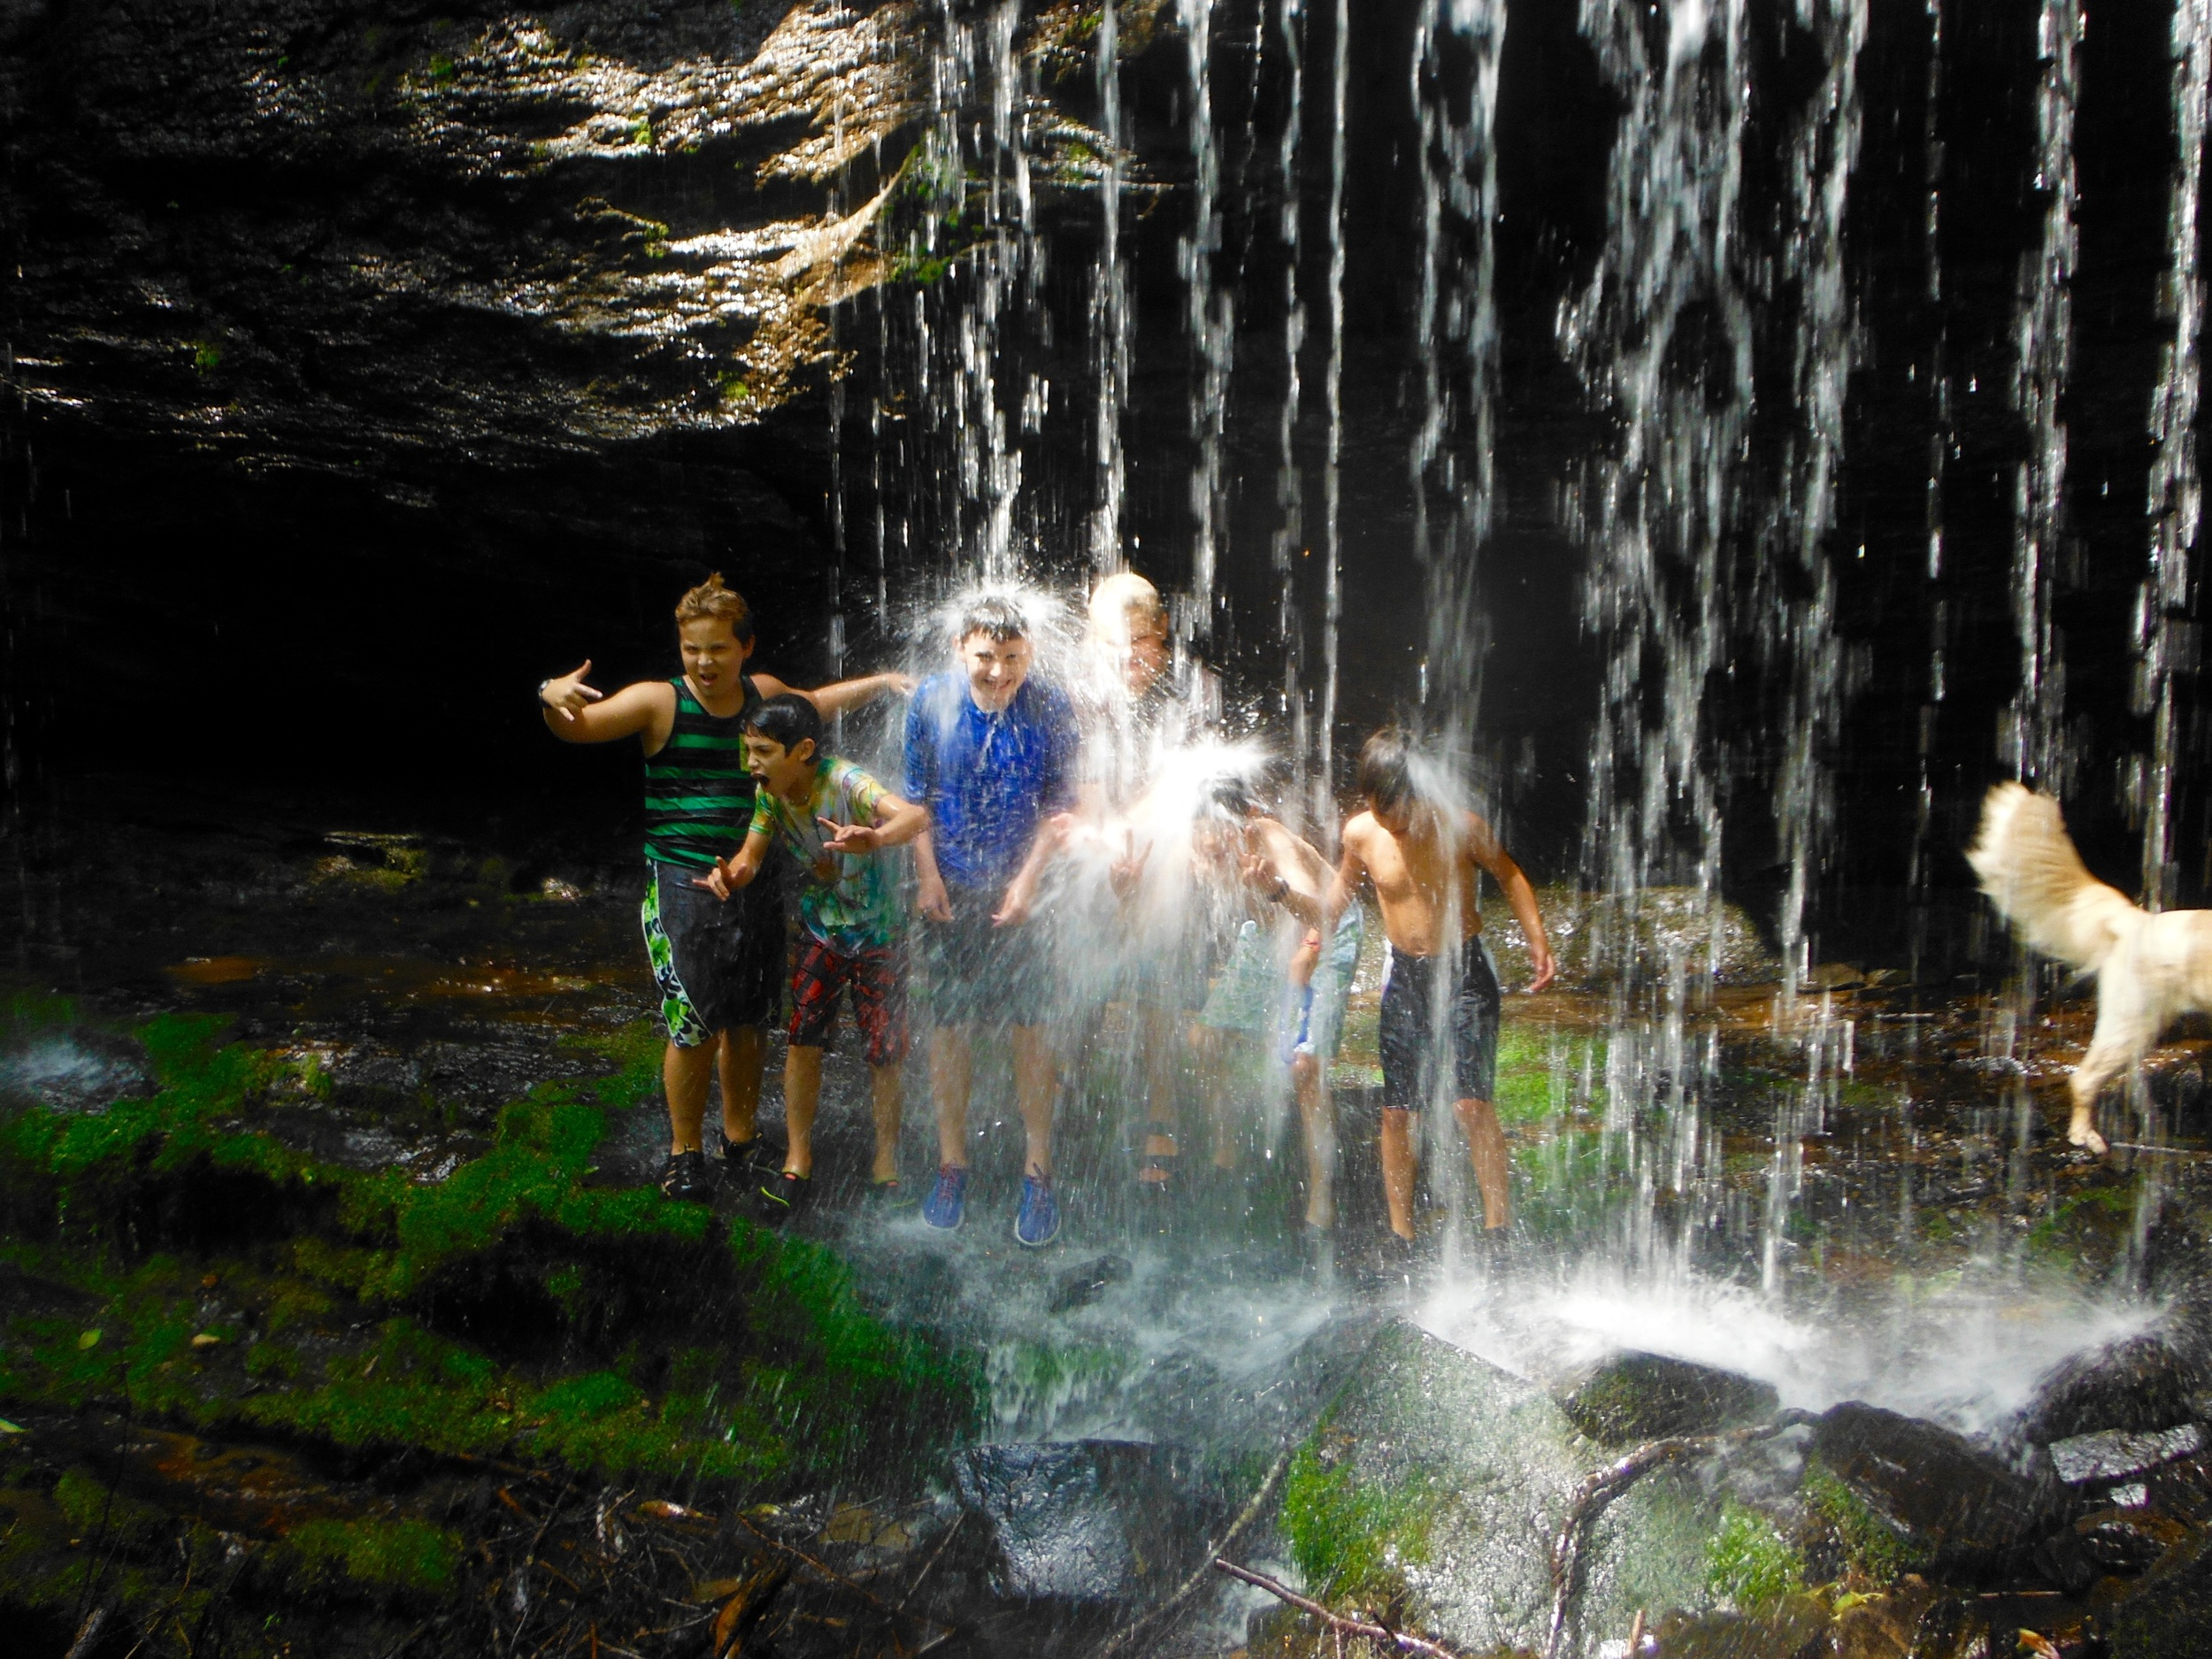 the-junior-boys-get-soaking-wet-under-a-local-waterfall.jpg